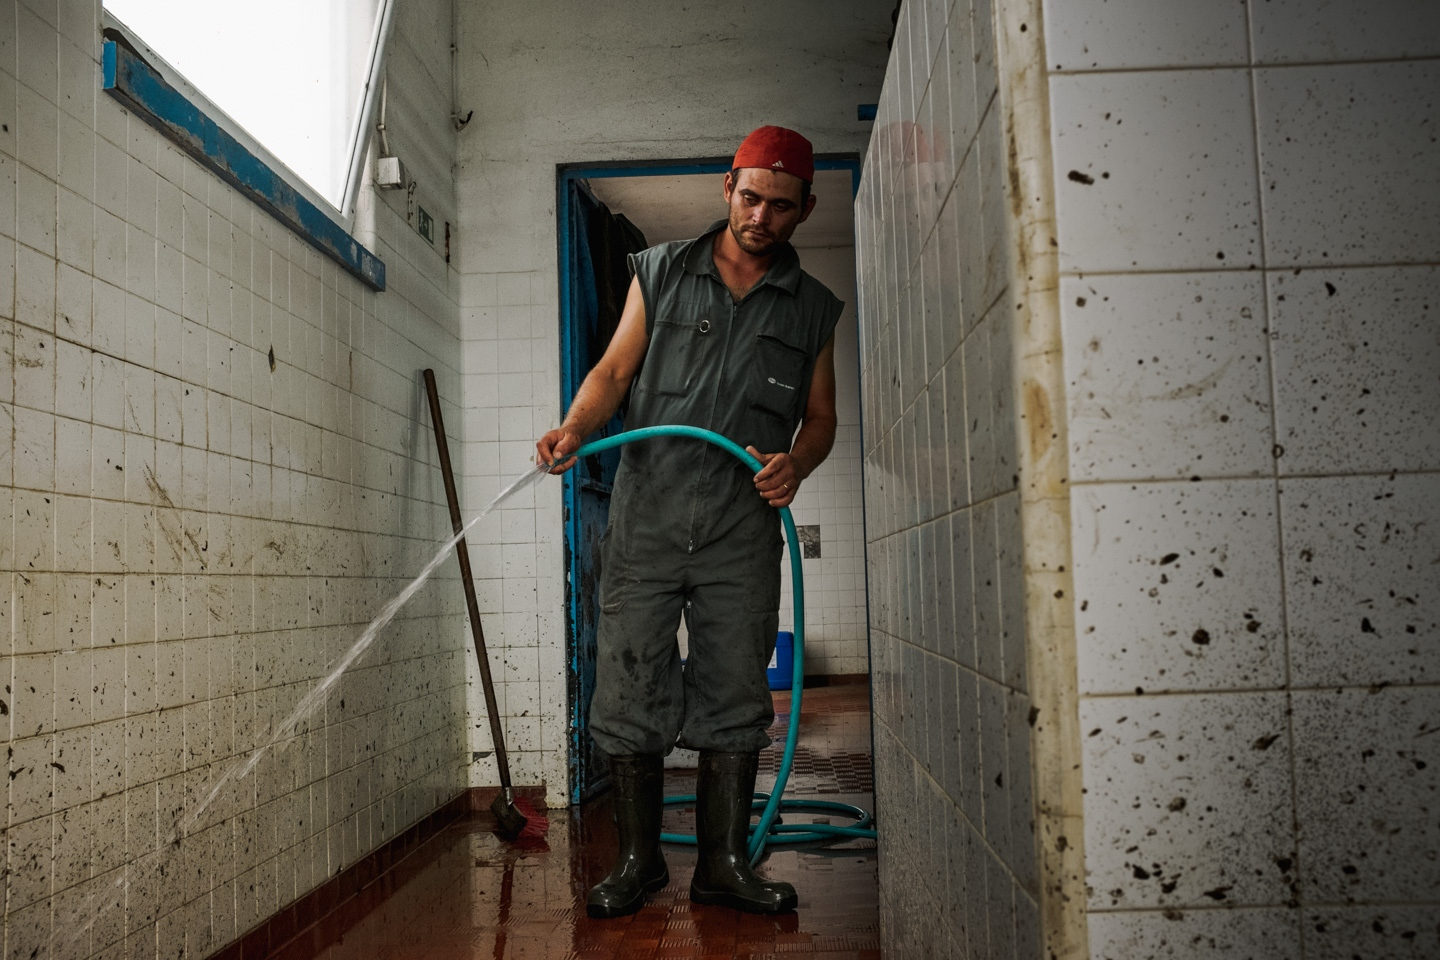 Jorge Pedro (26) is from São Miguel, Azores. Jorge has worked in cow milk production since the age of 17. He also works as a gardener and a gravedigger. São Miguel, Azores. 8th August 2014.